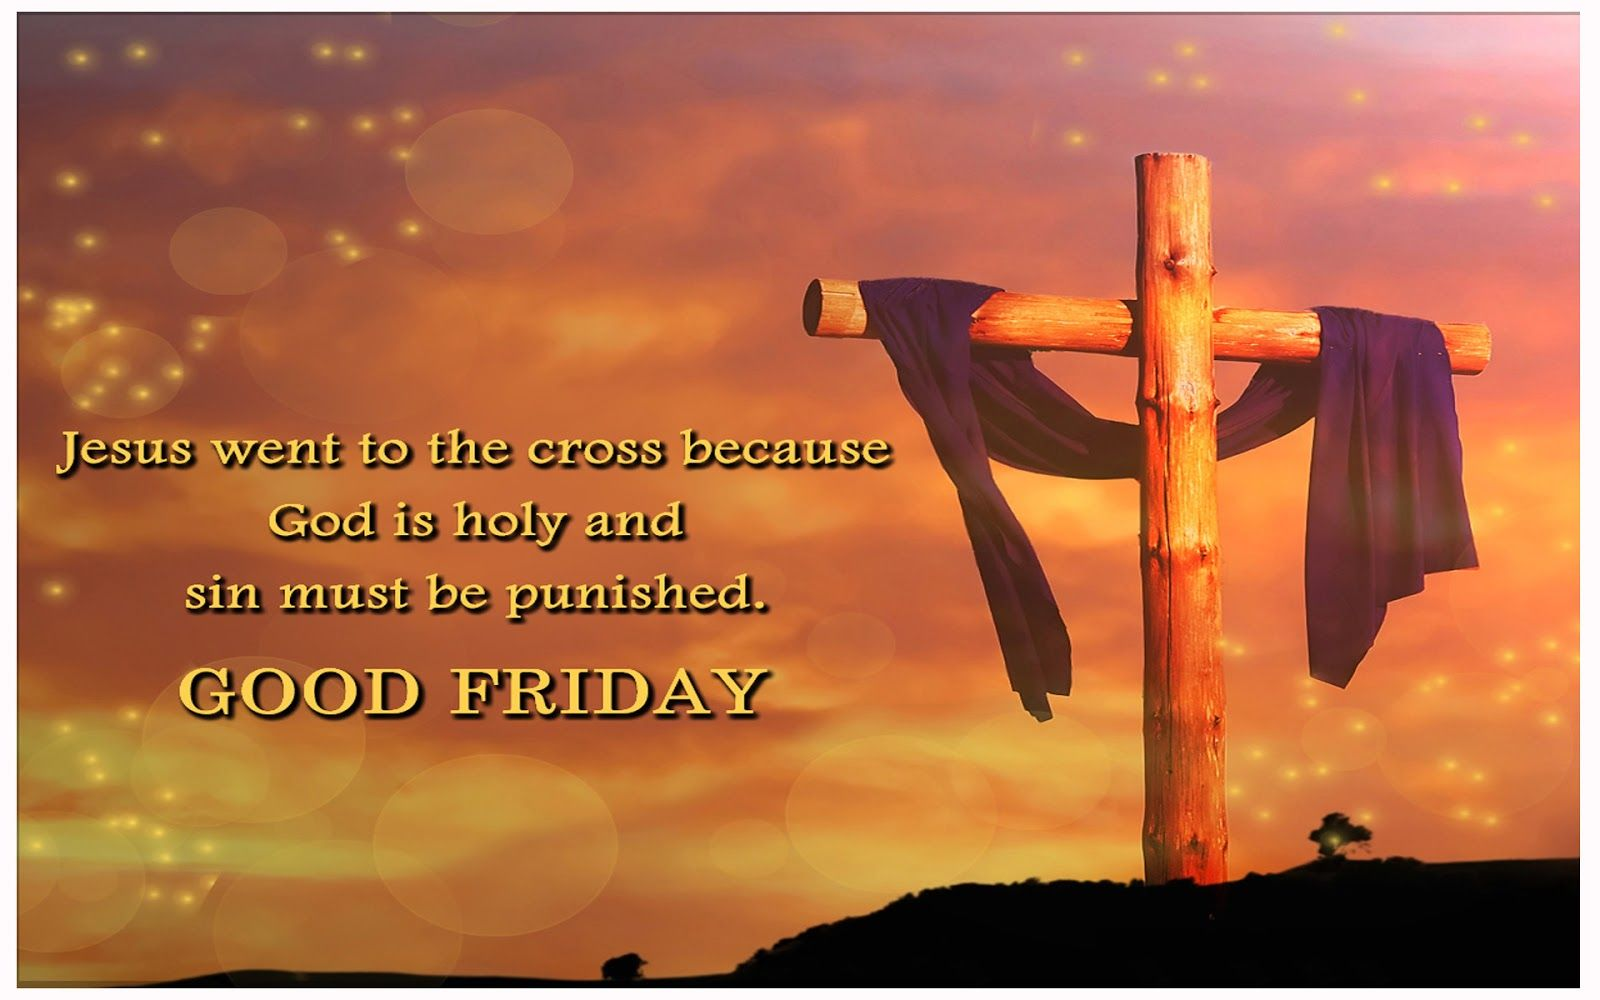 Good Friday Greeting Cards 2 Good Friday Pinterest Friday